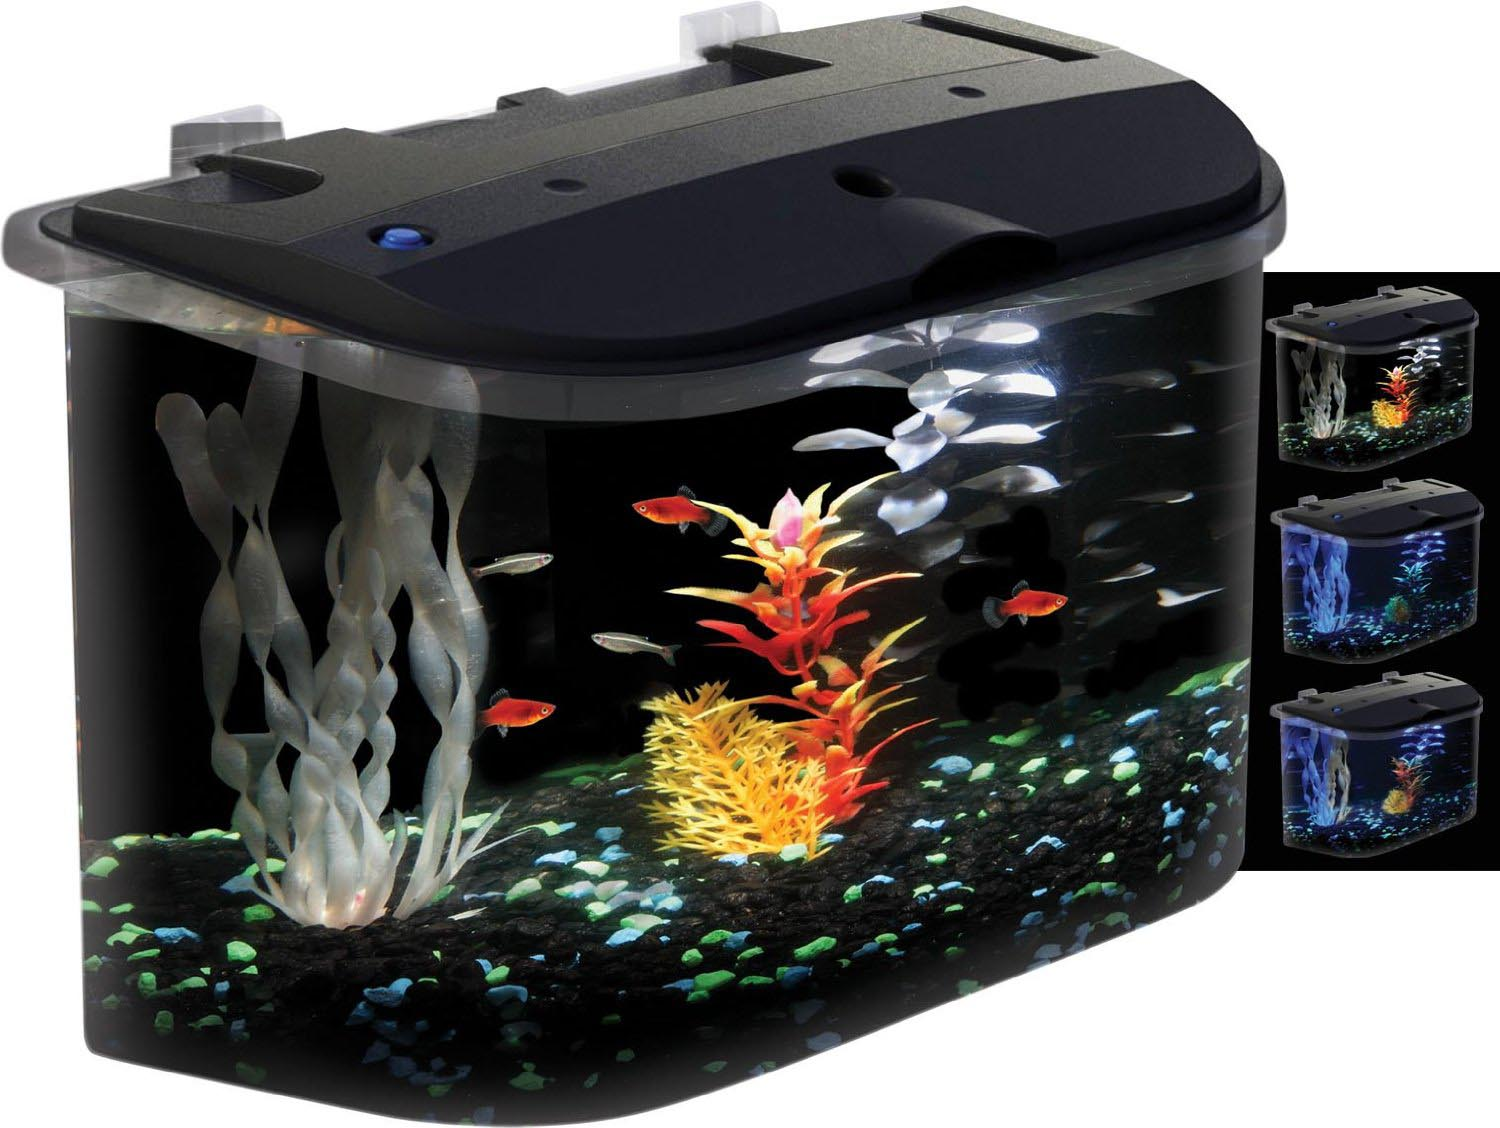 Best small fish aquarium aquarium design ideas for Good fish for small tanks